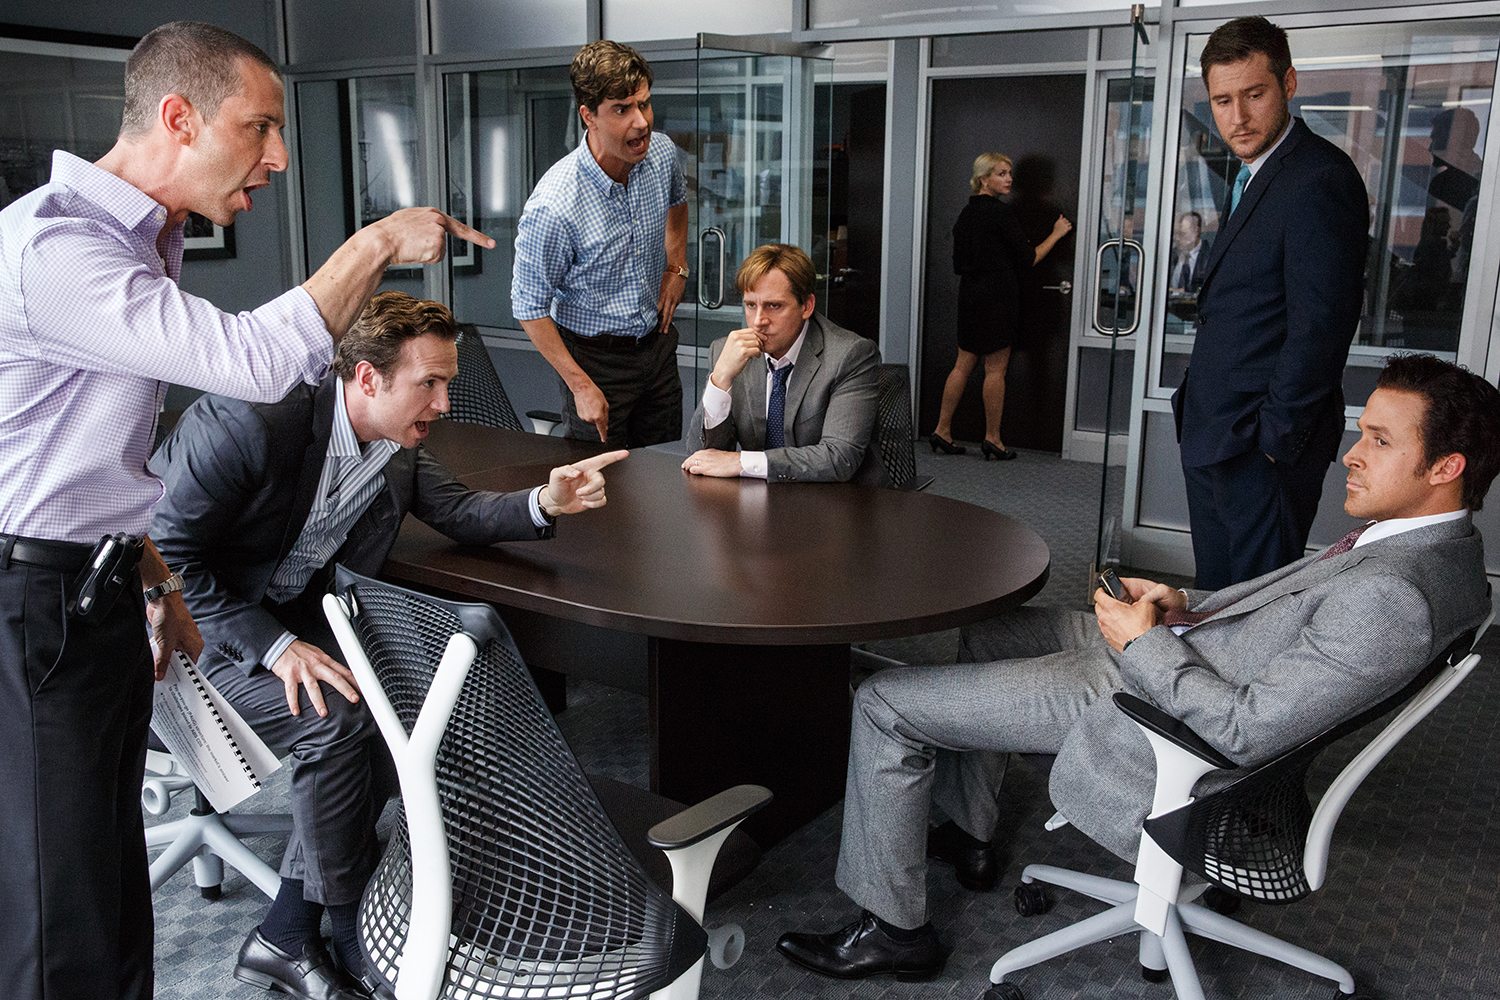 'Big Short': How 'Anchorman' Director Took on Wall Street and Won